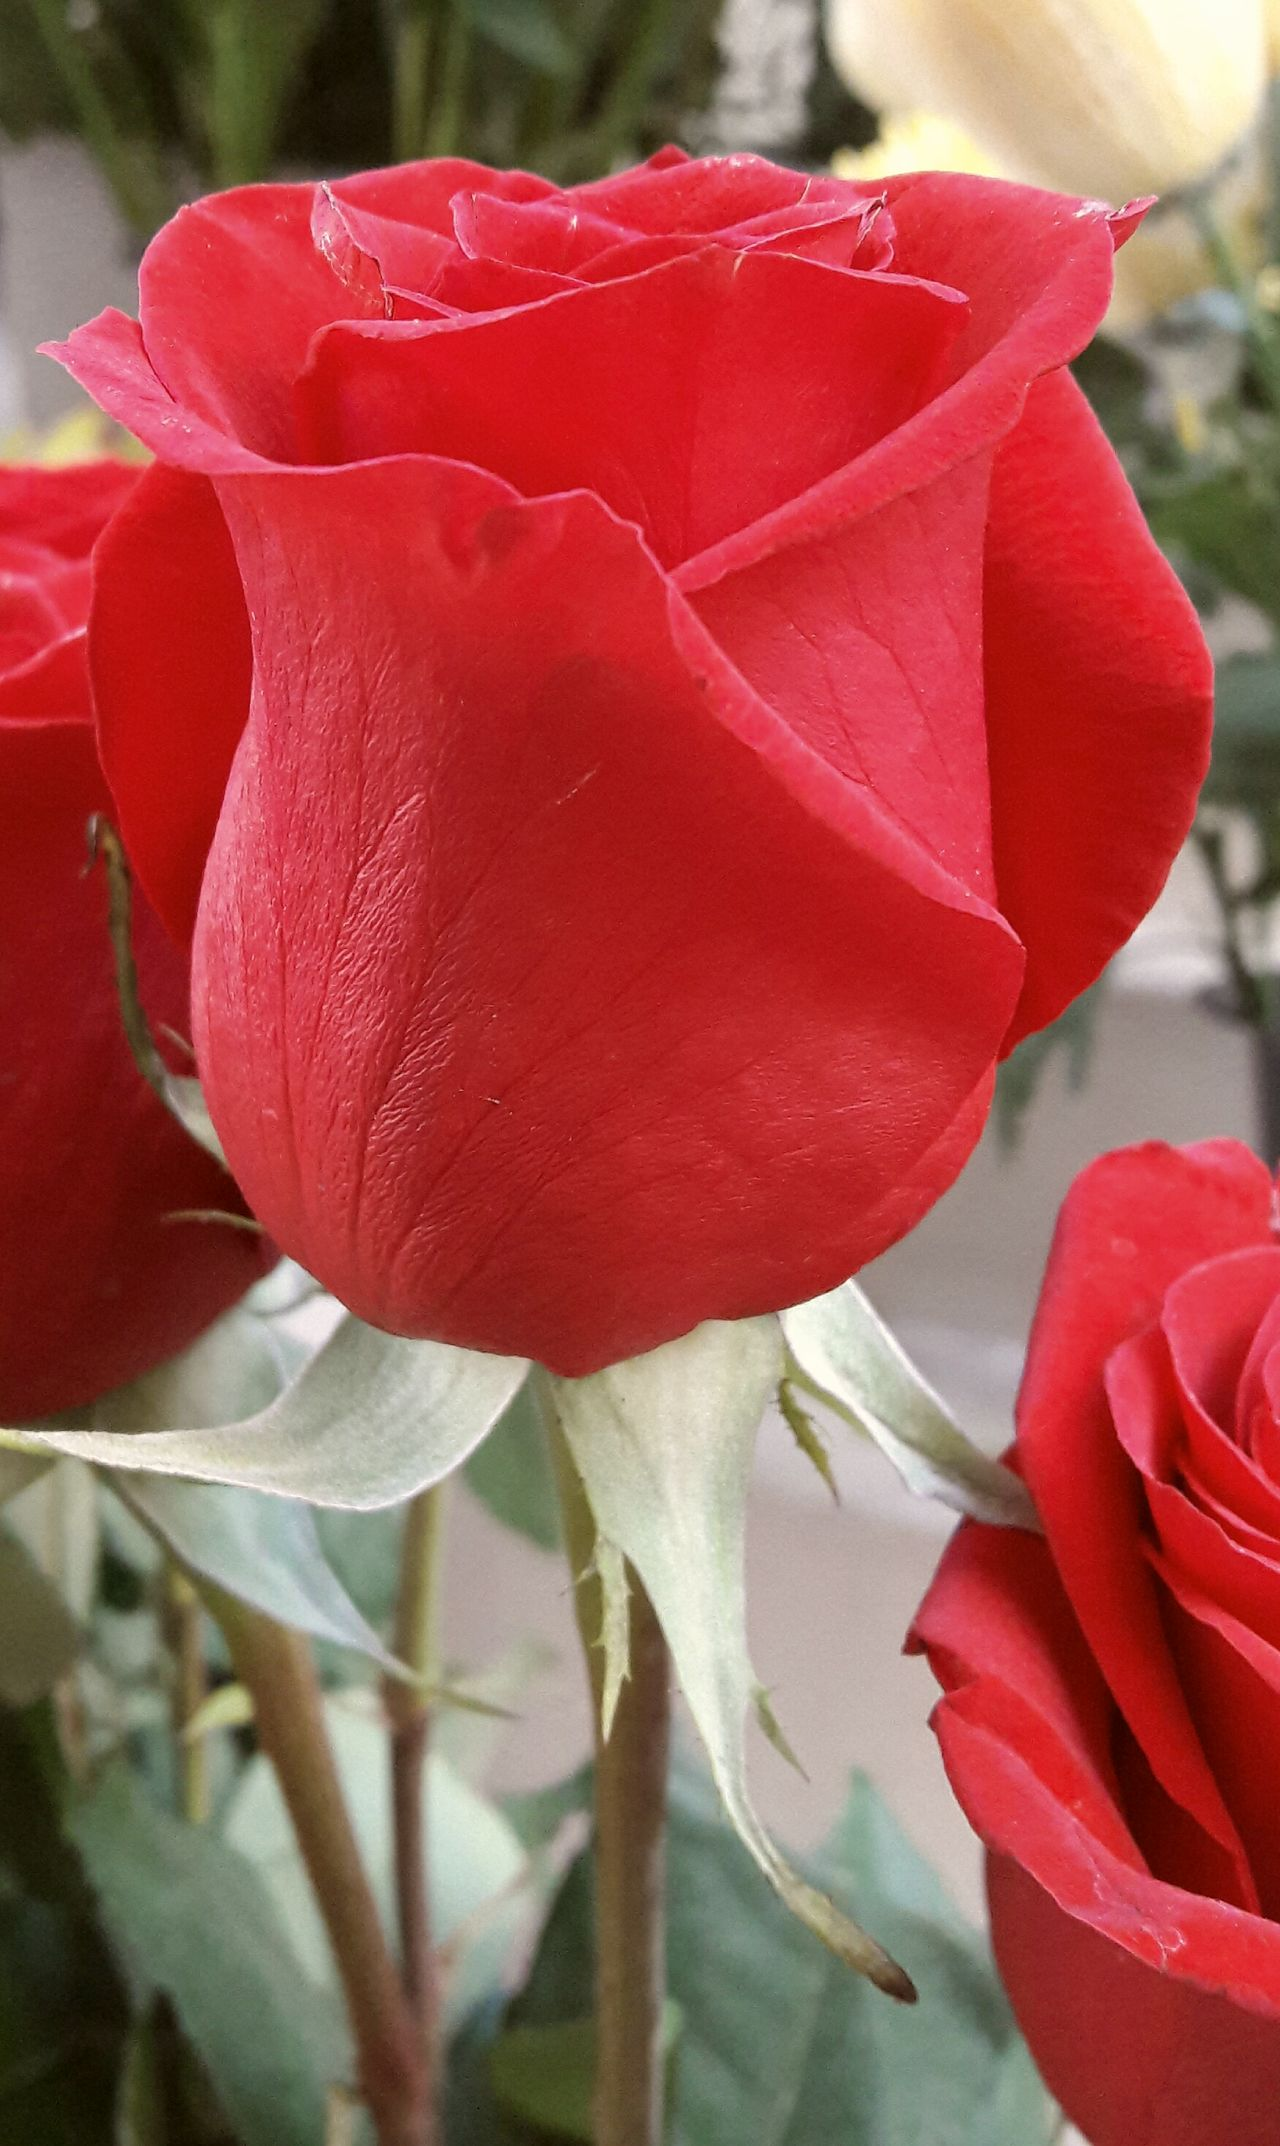 Flower Red Fragility Nature Petal Beauty In Nature Flower Head Close-up Plant Growth Freshness No People Outdoors Day Flowers Nature Red Color EyeEm Gallery EyeEm Best Shots Flower Collection Roses Rose🌹 Rose Petals Roses Flowers  Roses Flowers  Red Rose Red Roses Red Flowers